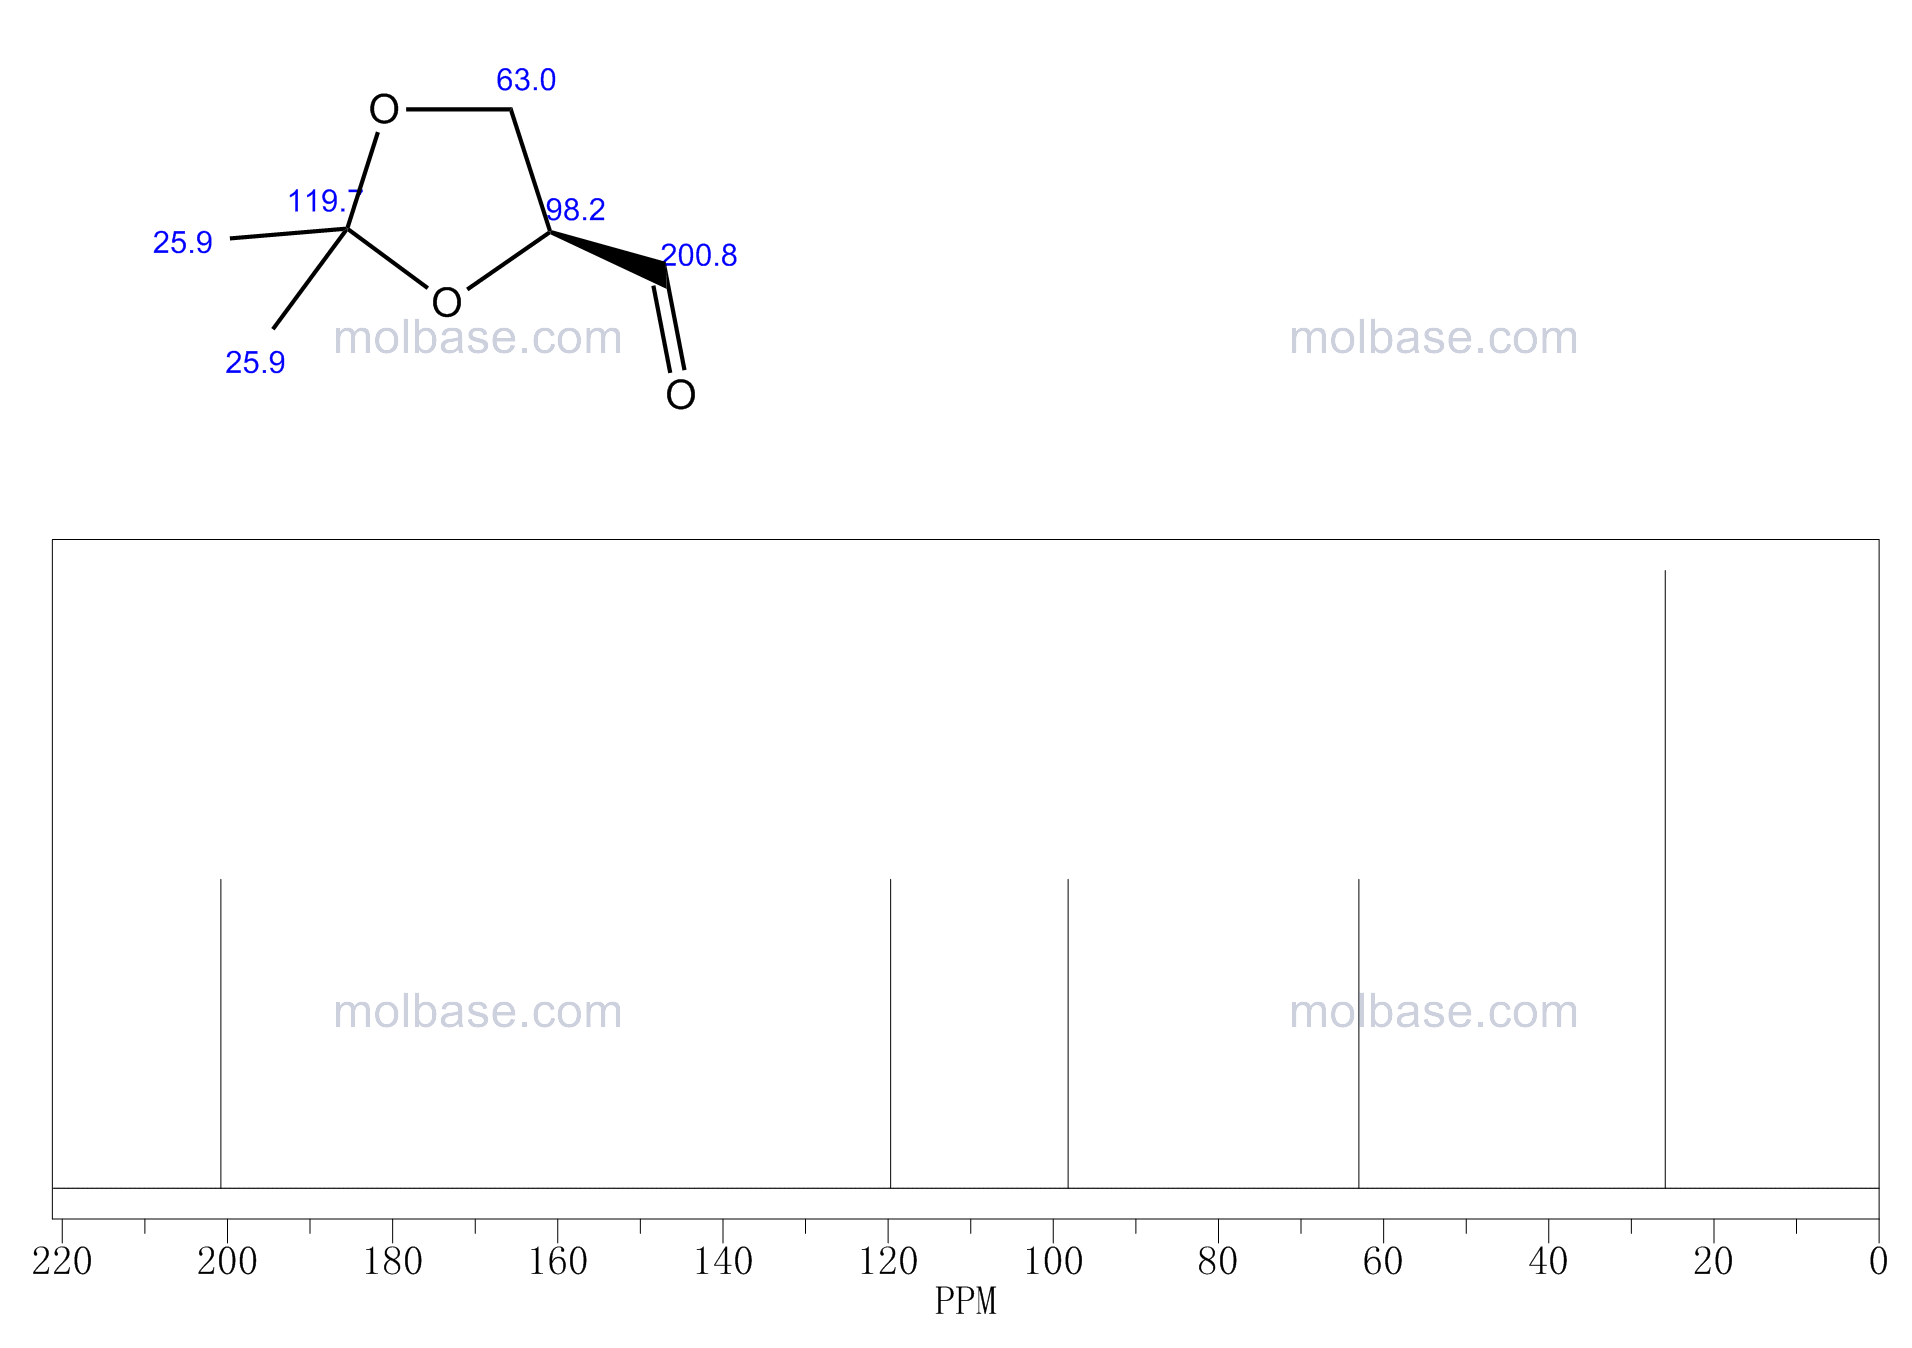 (R)-(+)-2,2-Dimethyl-1,3-dioxolane-4-carboxaldehyde NMR spectra analysis, Chemical CAS NO. 15186-48-8 NMR spectral analysis, (R)-(+)-2,2-Dimethyl-1,3-dioxolane-4-carboxaldehyde C-NMR spectrum